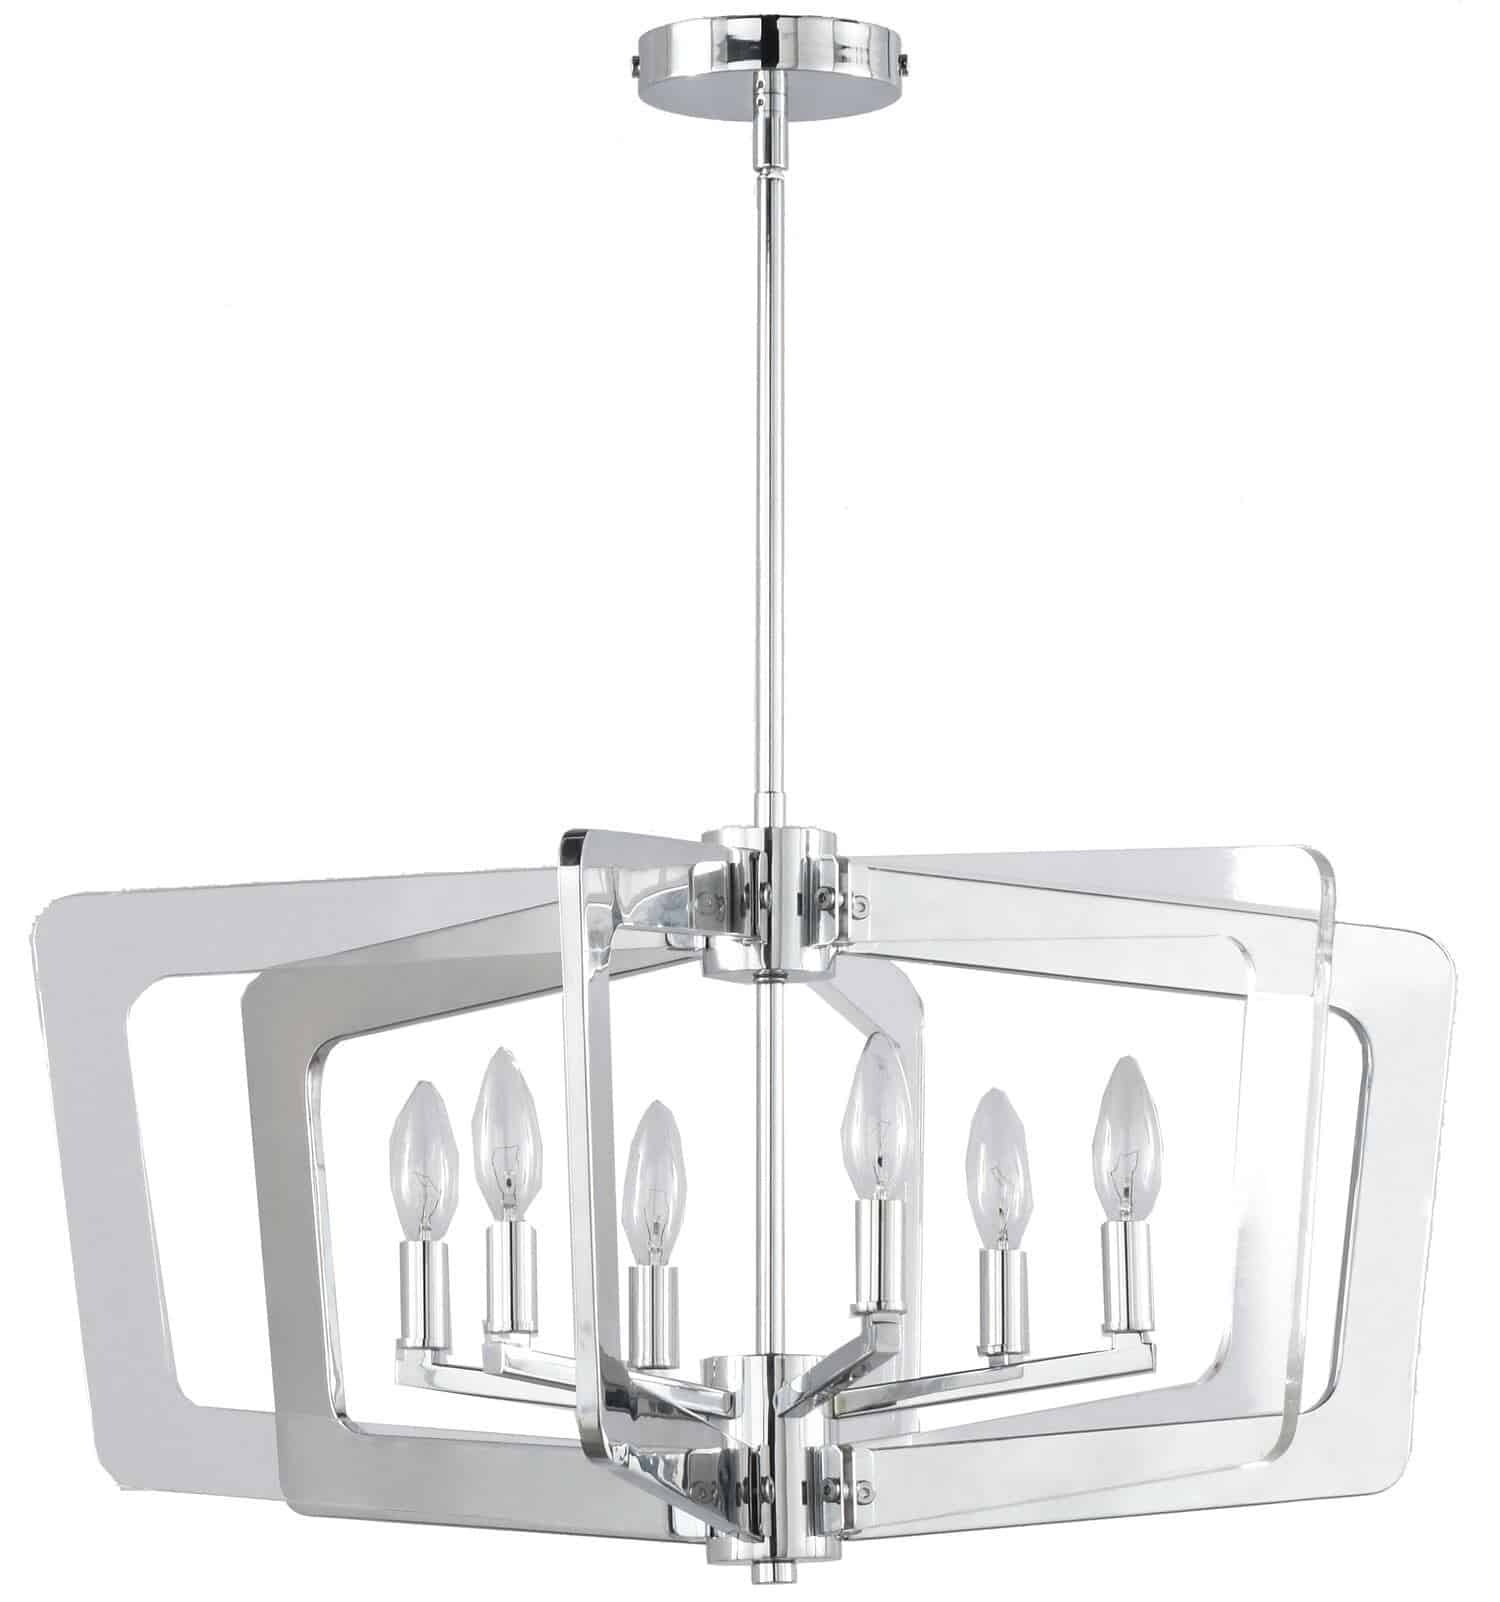 6 Light Chandelier, Polished Chrome Finish with Clear Acrylic Arms